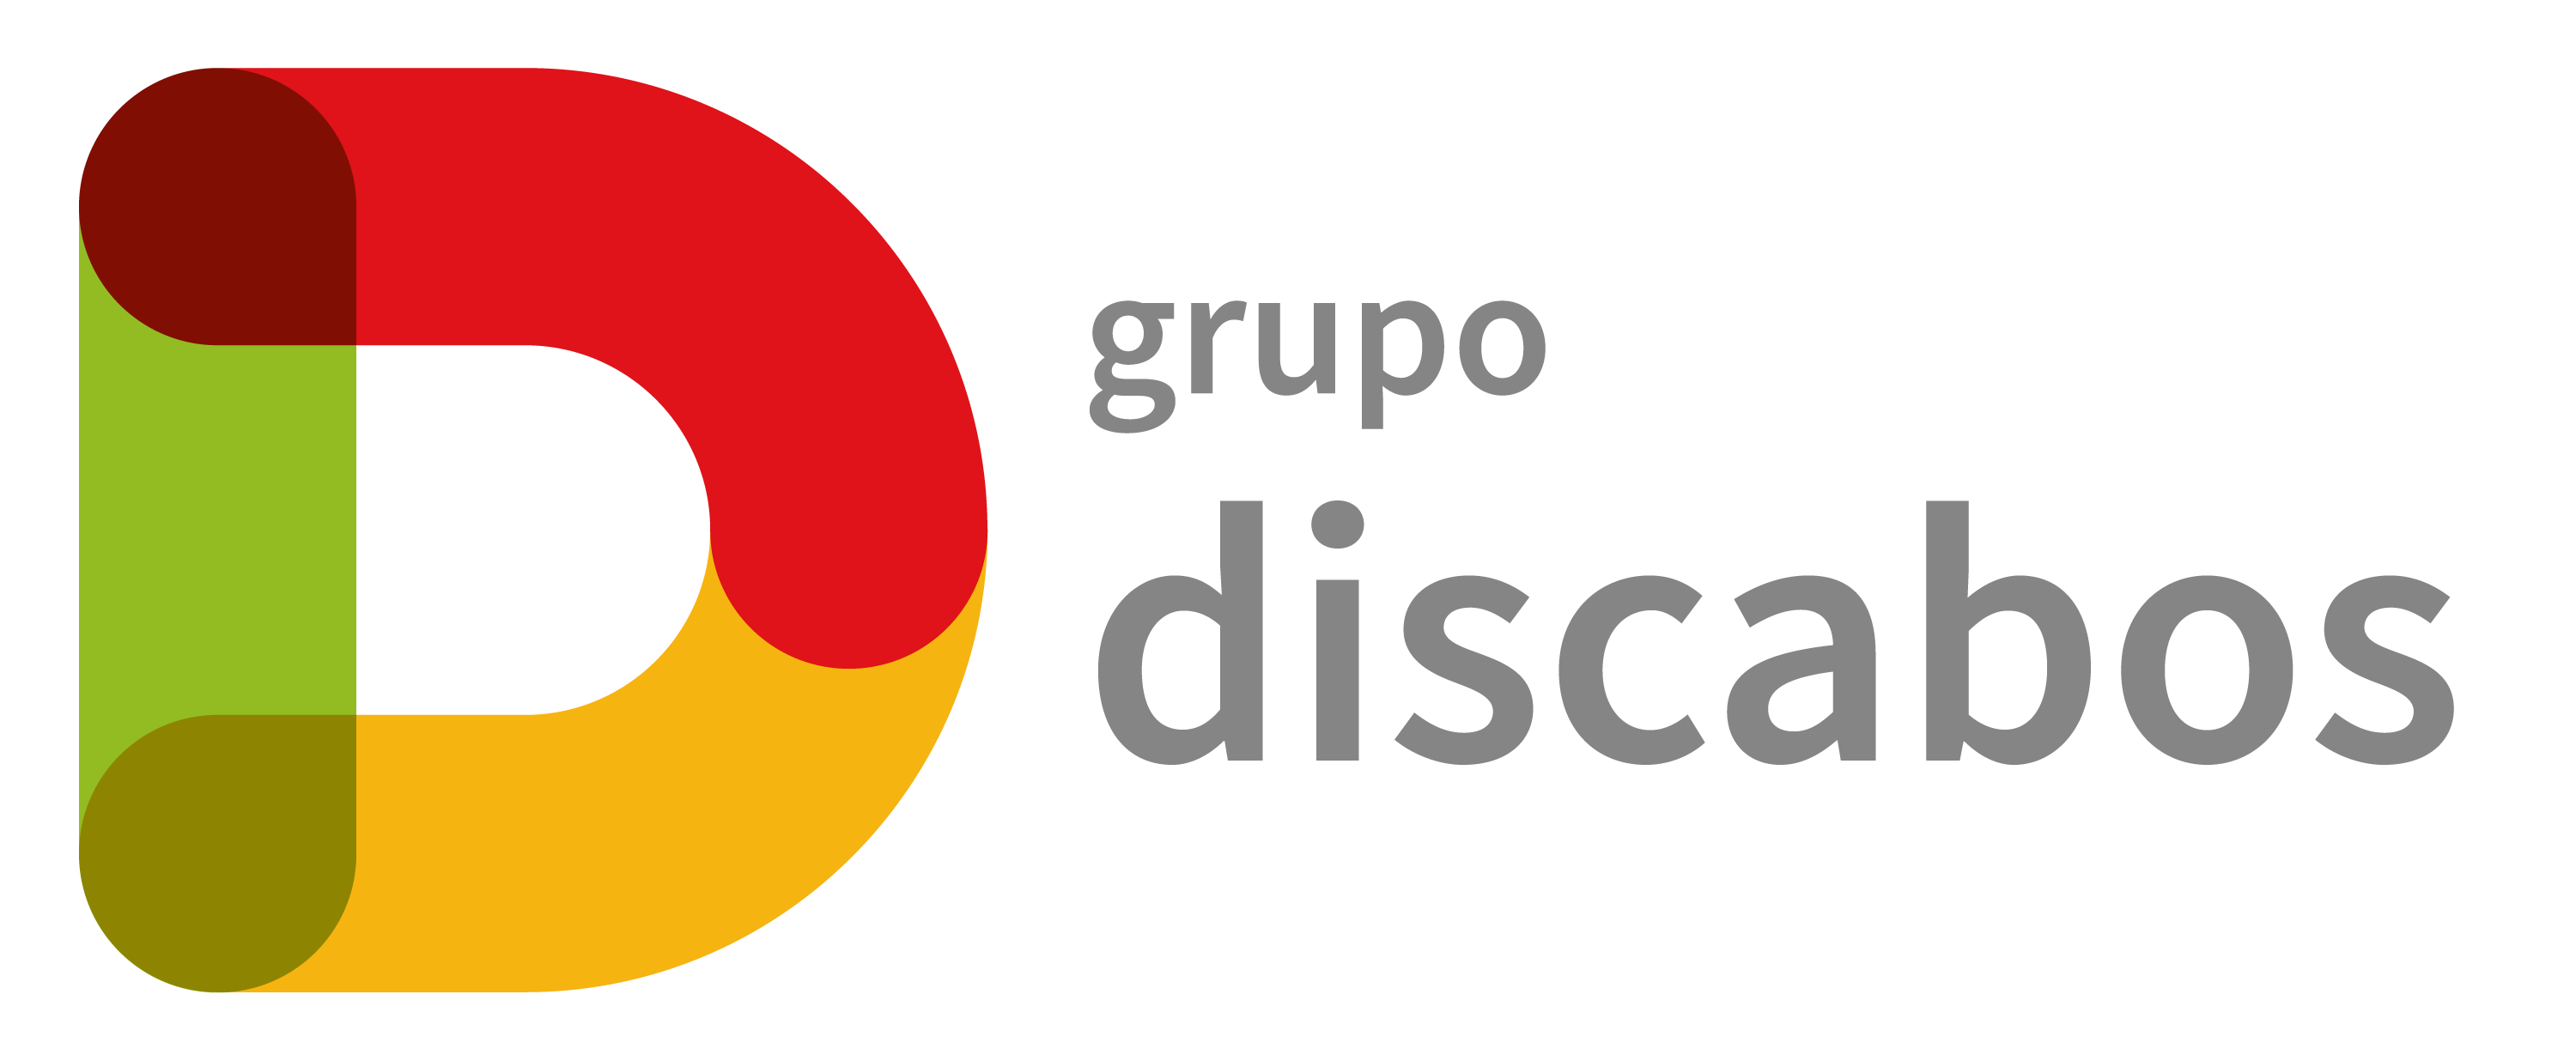 1 discabos